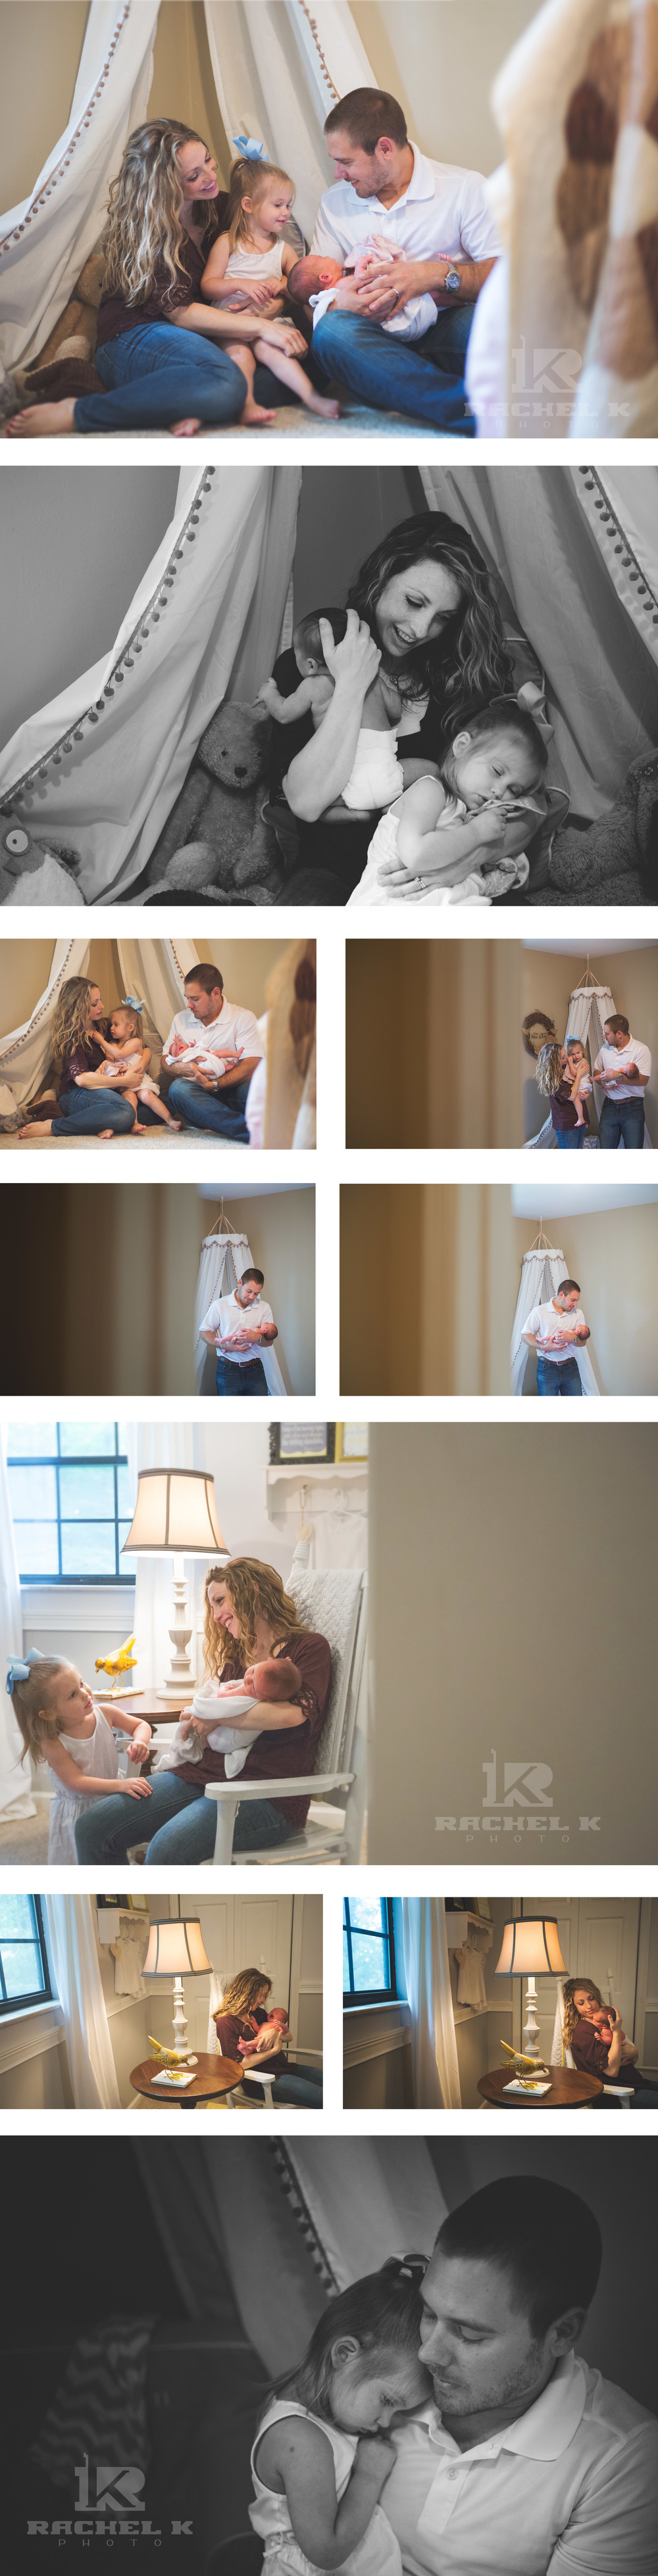 Rachel K Photo Knoxville lifestyle newborn session